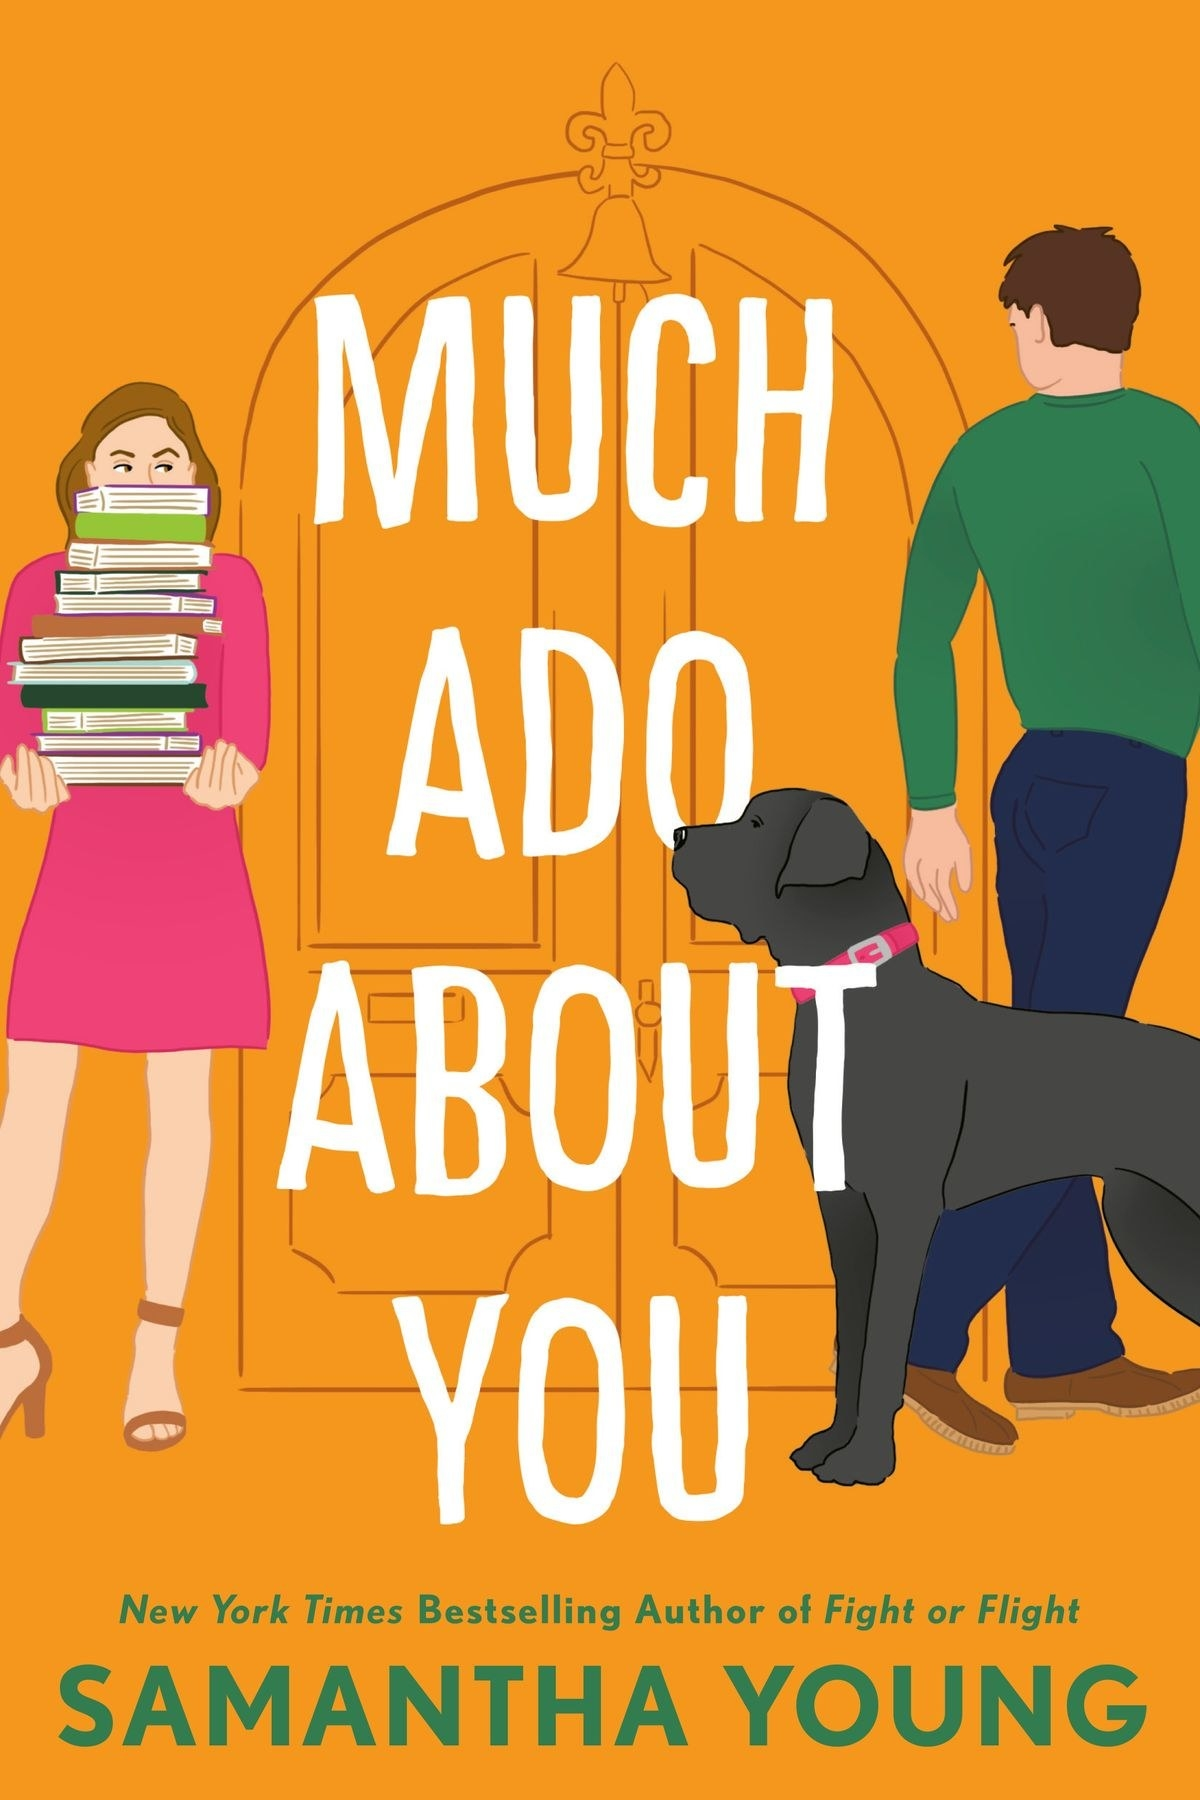 A woman holding a large stack of books looks at a man with a dog